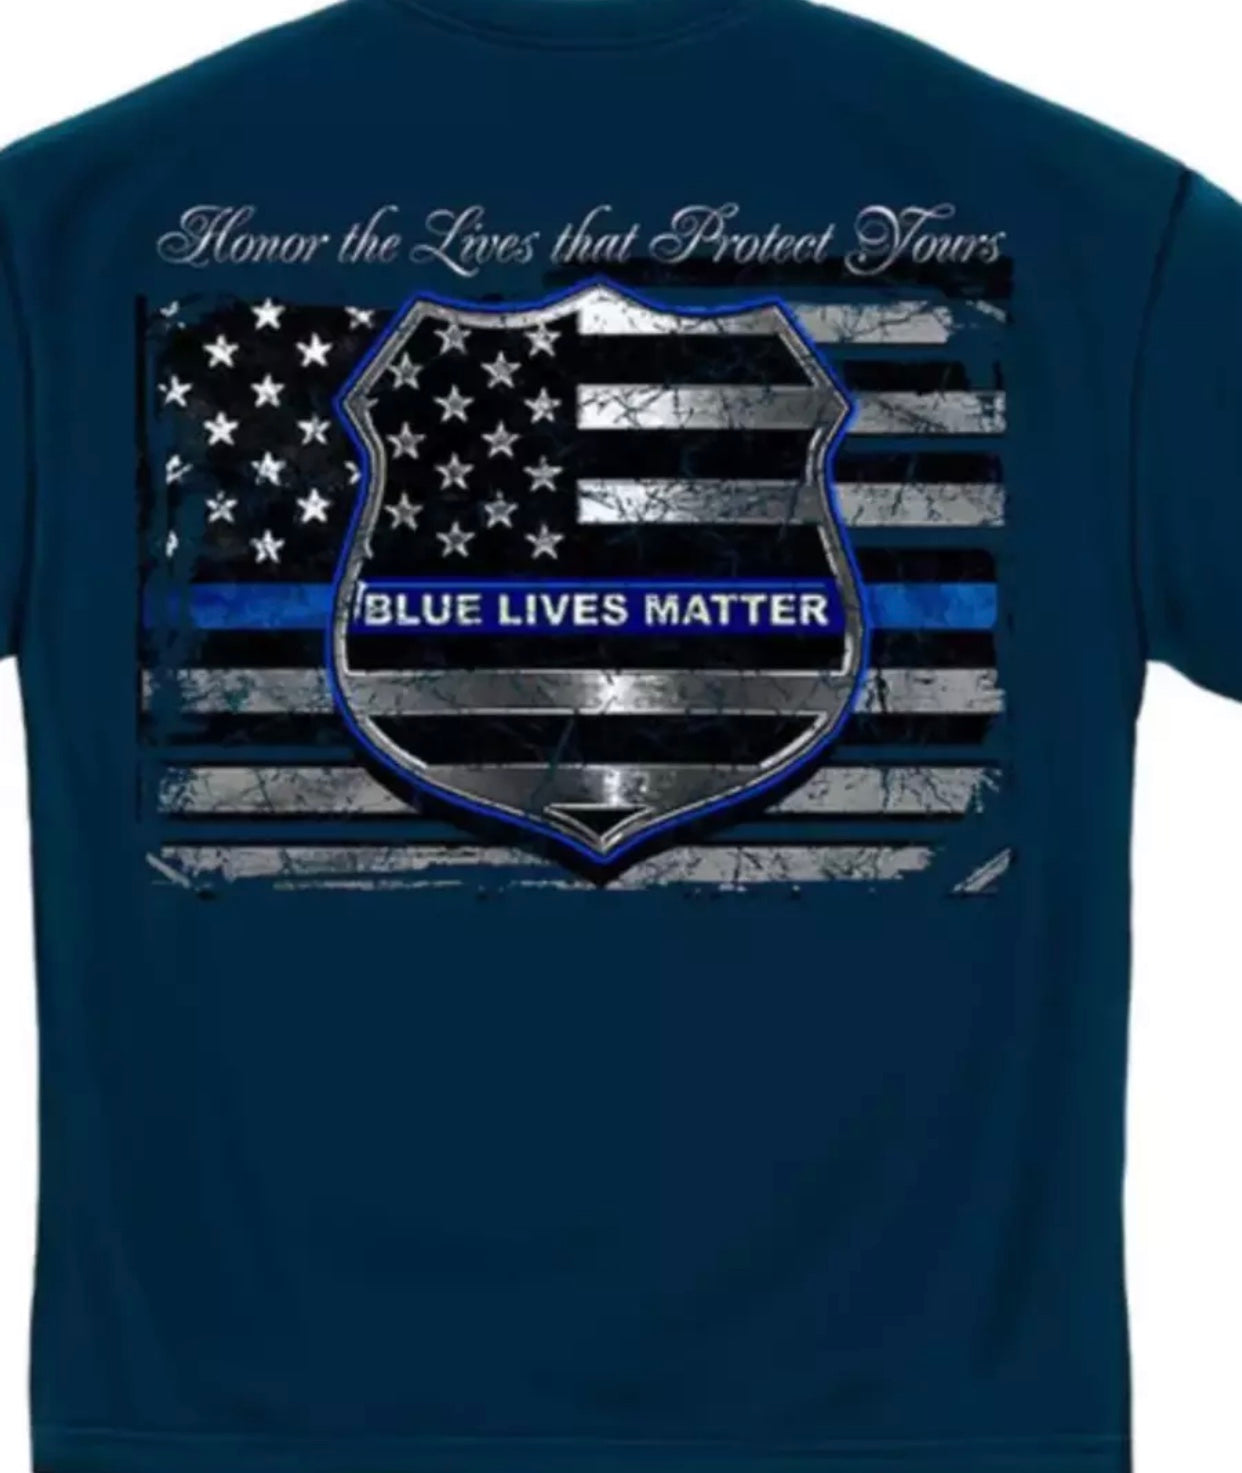 Blue Lives Matter Police Law Enforcement T-Shirt - The Wall Kids, Inc.